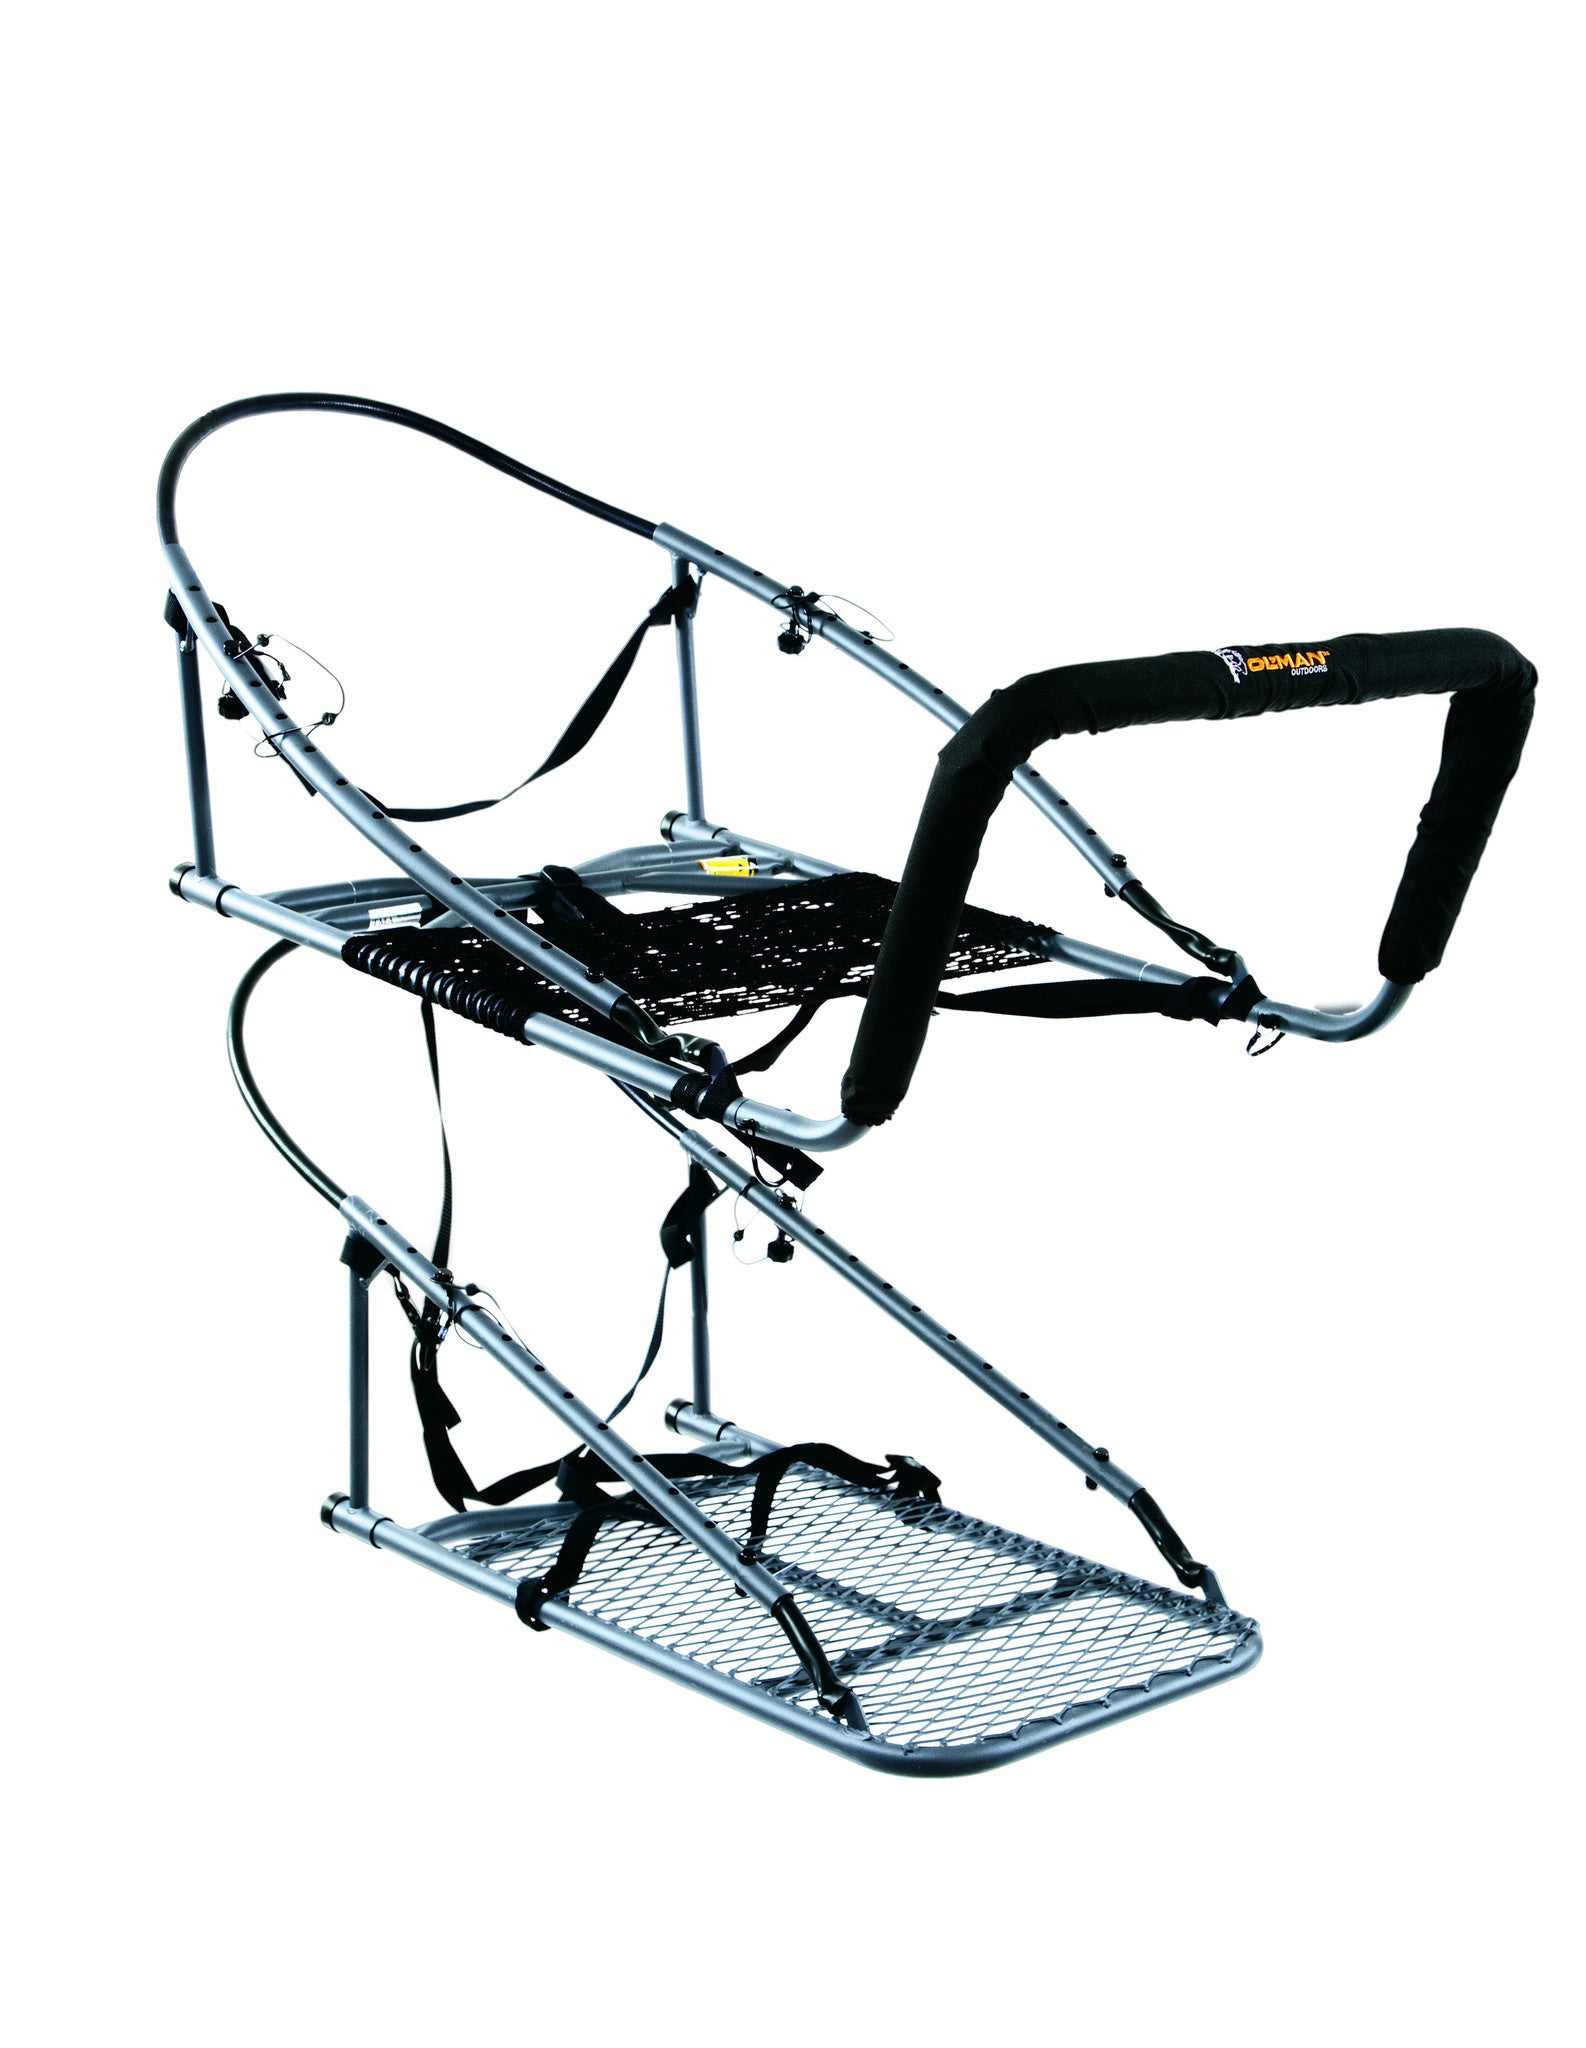 Ol Man Outdoors SteelMulti Vision Climber tree stand